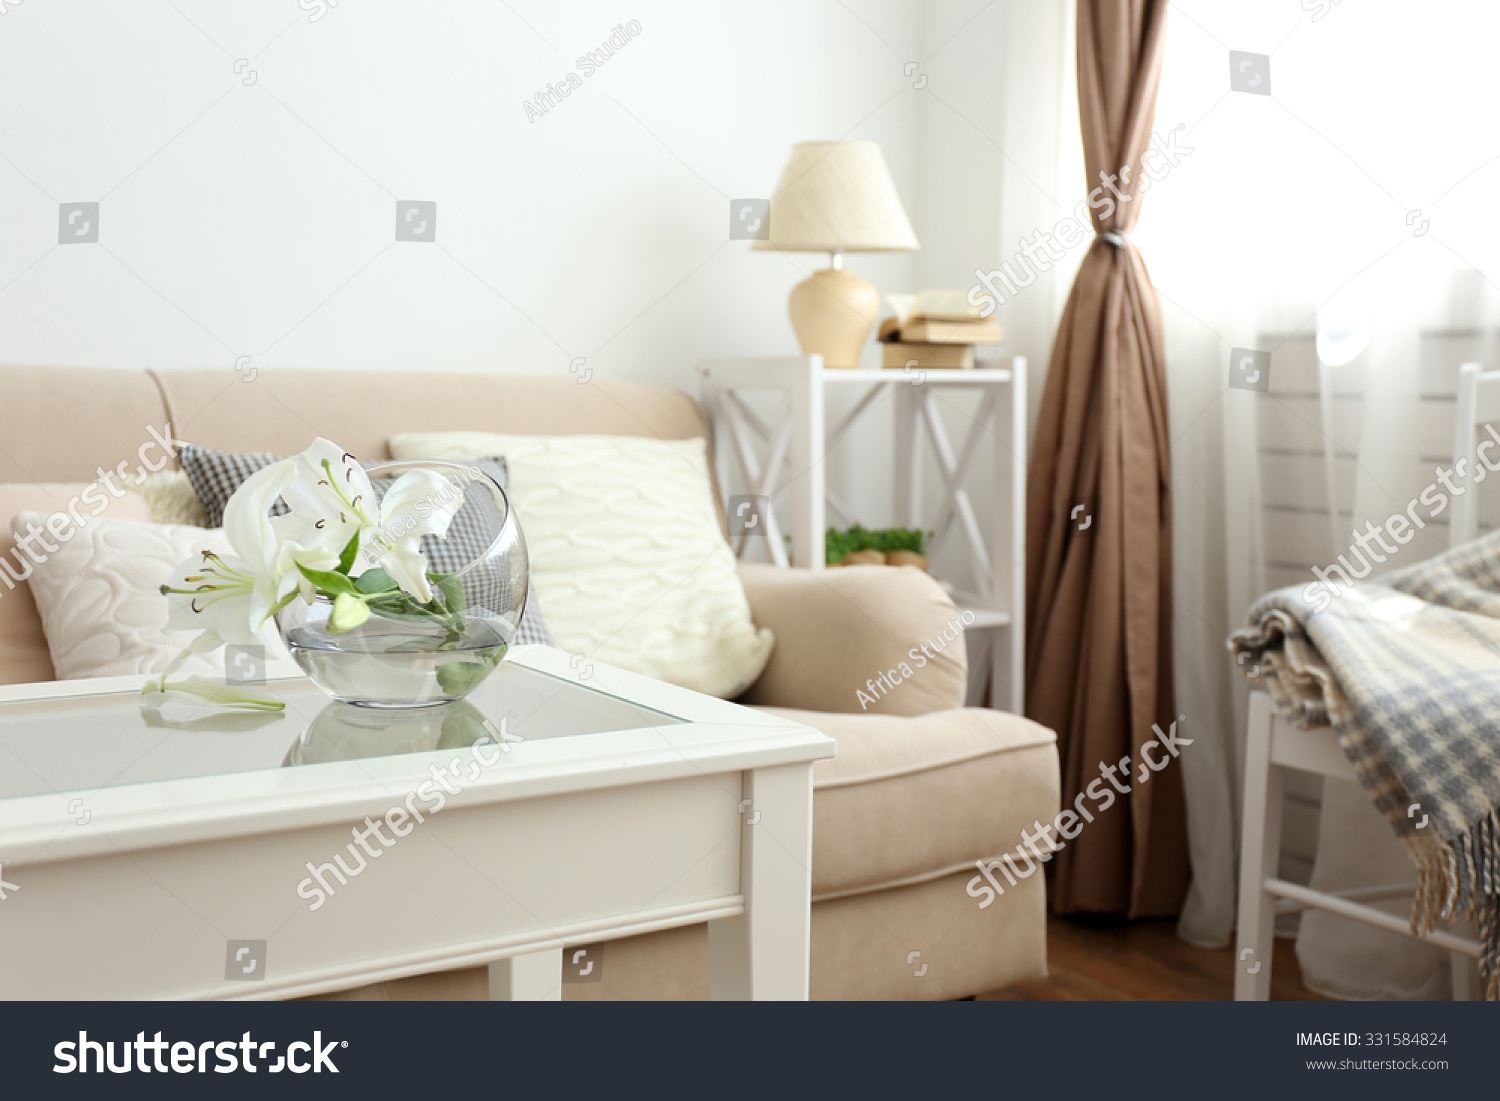 pastel color sofa beautiful pillows vase stock photo 331584824 shutterstock. Black Bedroom Furniture Sets. Home Design Ideas